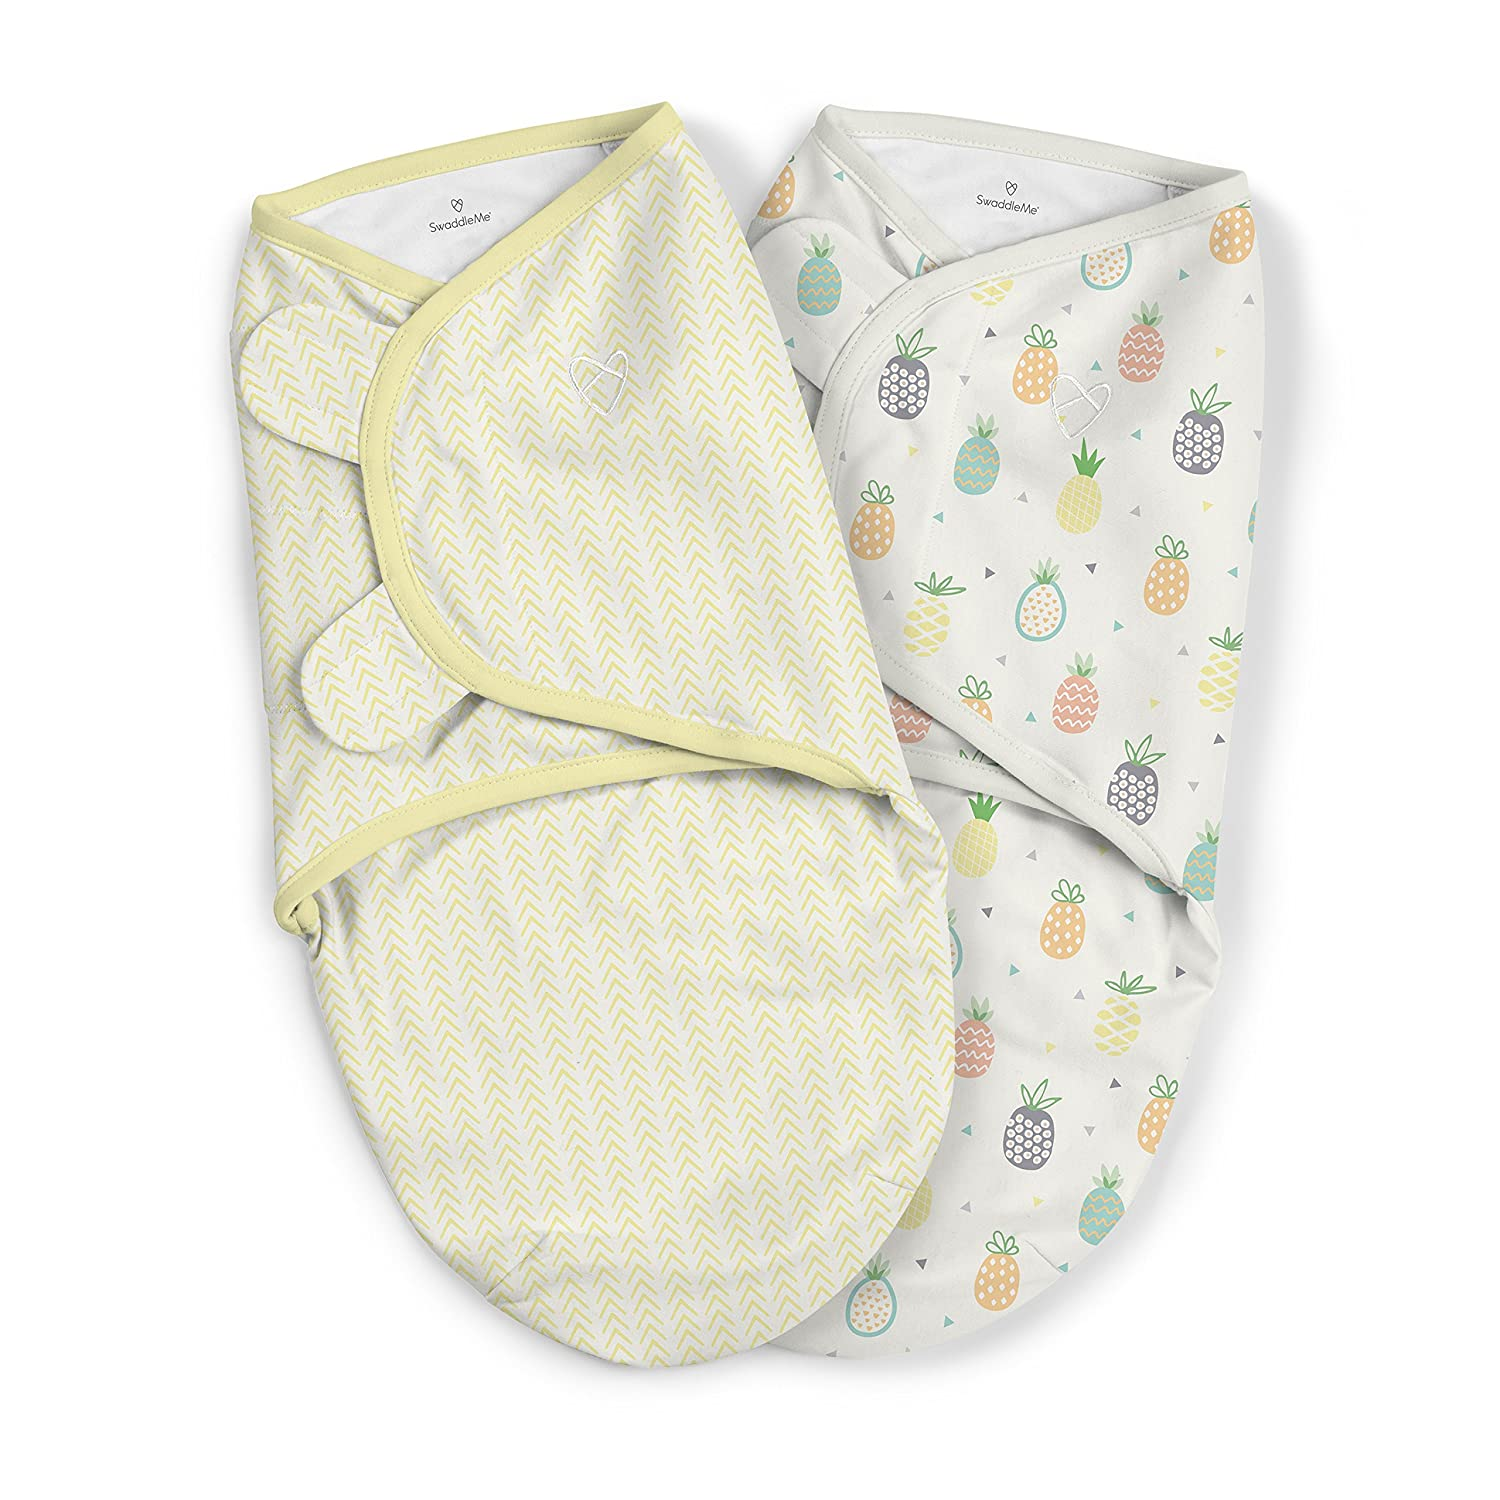 SwaddleMe Original Organic Swaddle – Size Small/Medium, 0-3 Months, 2-Pack (Pineapple Party )